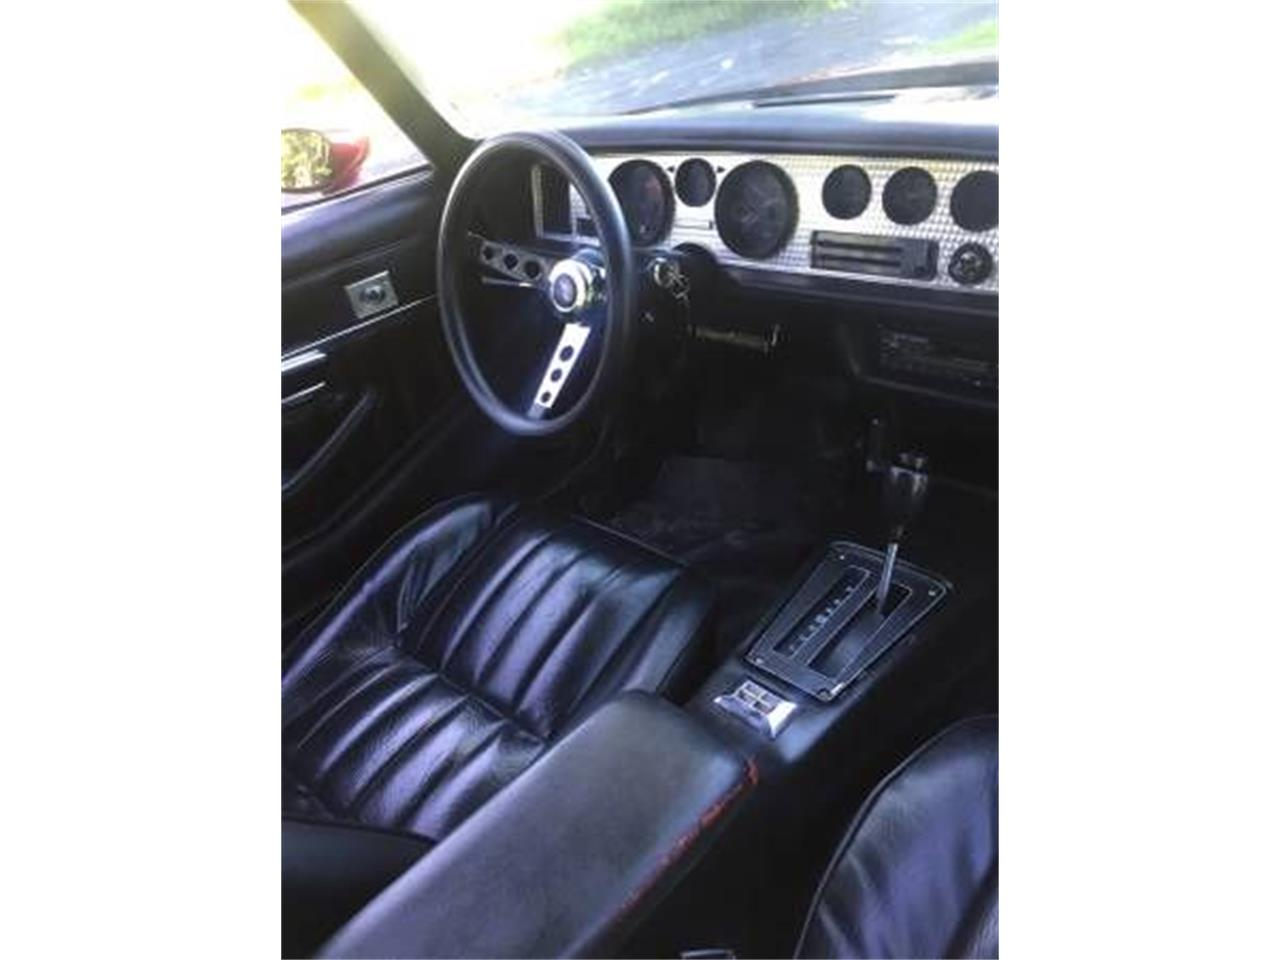 Large Picture of '79 Pontiac Firebird Trans Am - $10,395.00 Offered by Classic Car Deals - O159